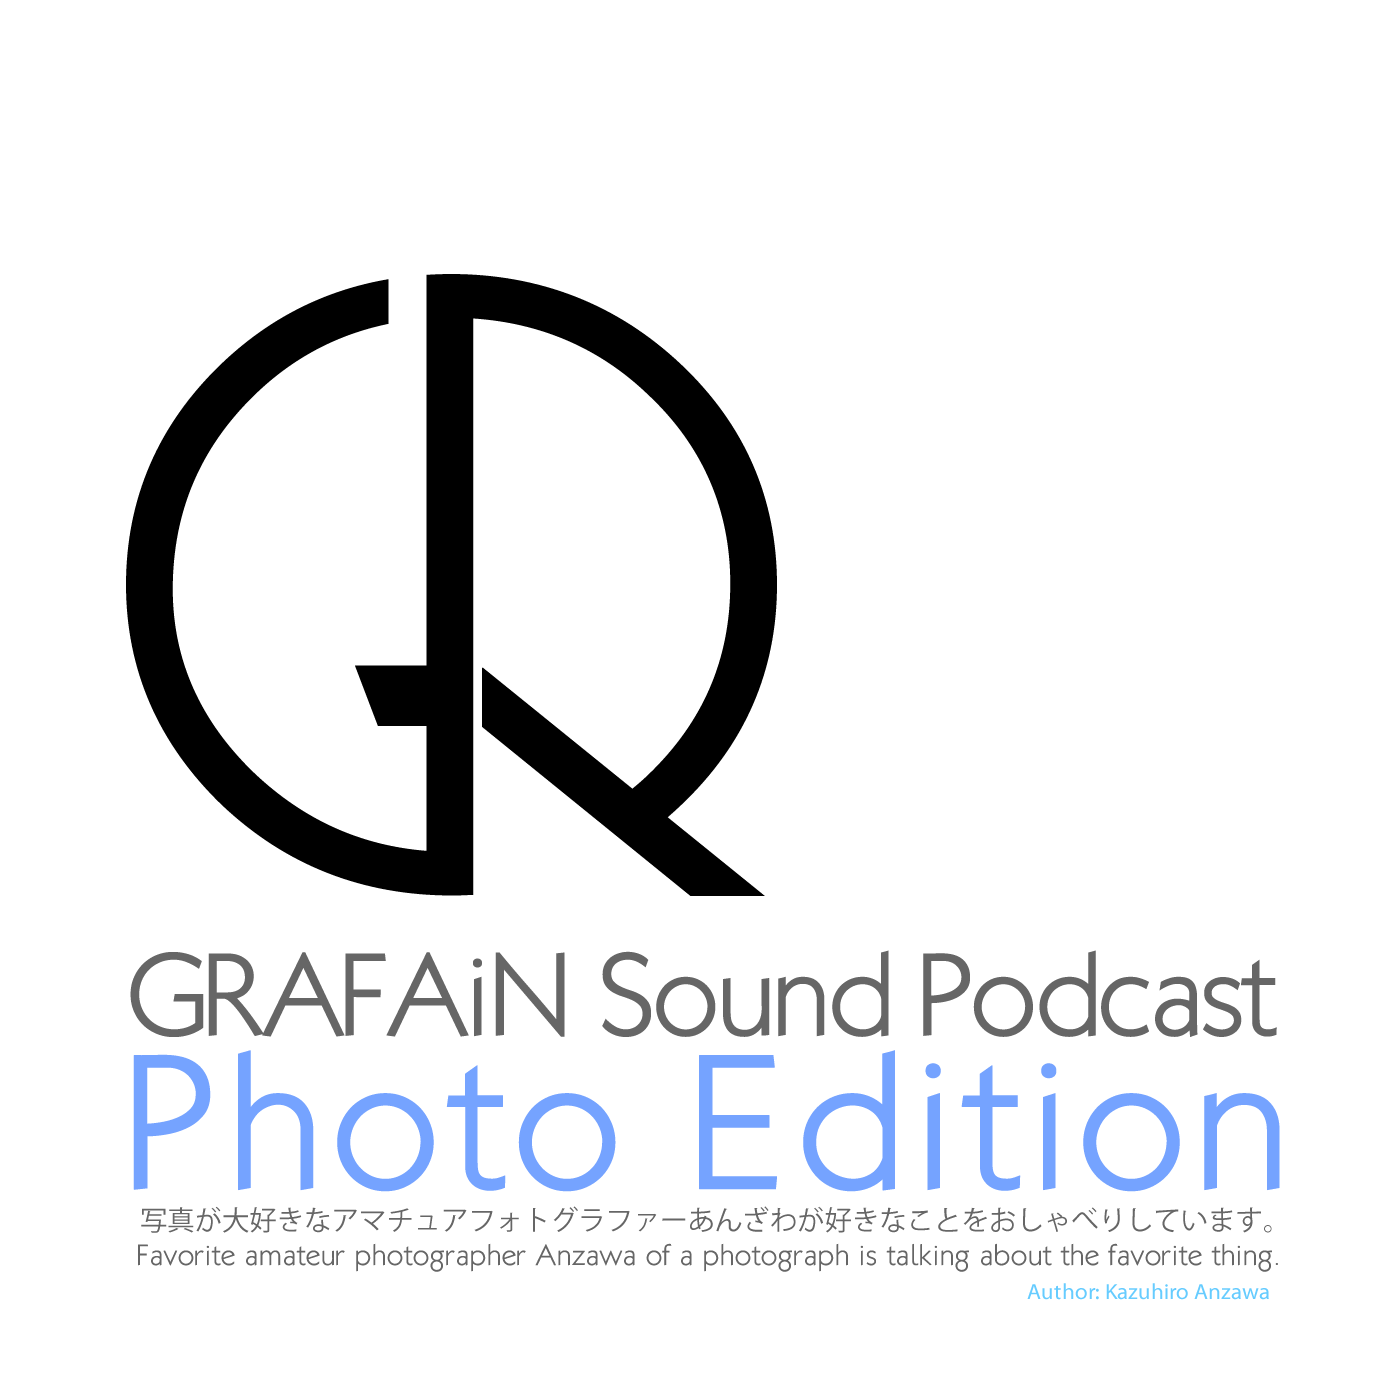 grafain_sound_podcast_photo_e_logo2_1400px